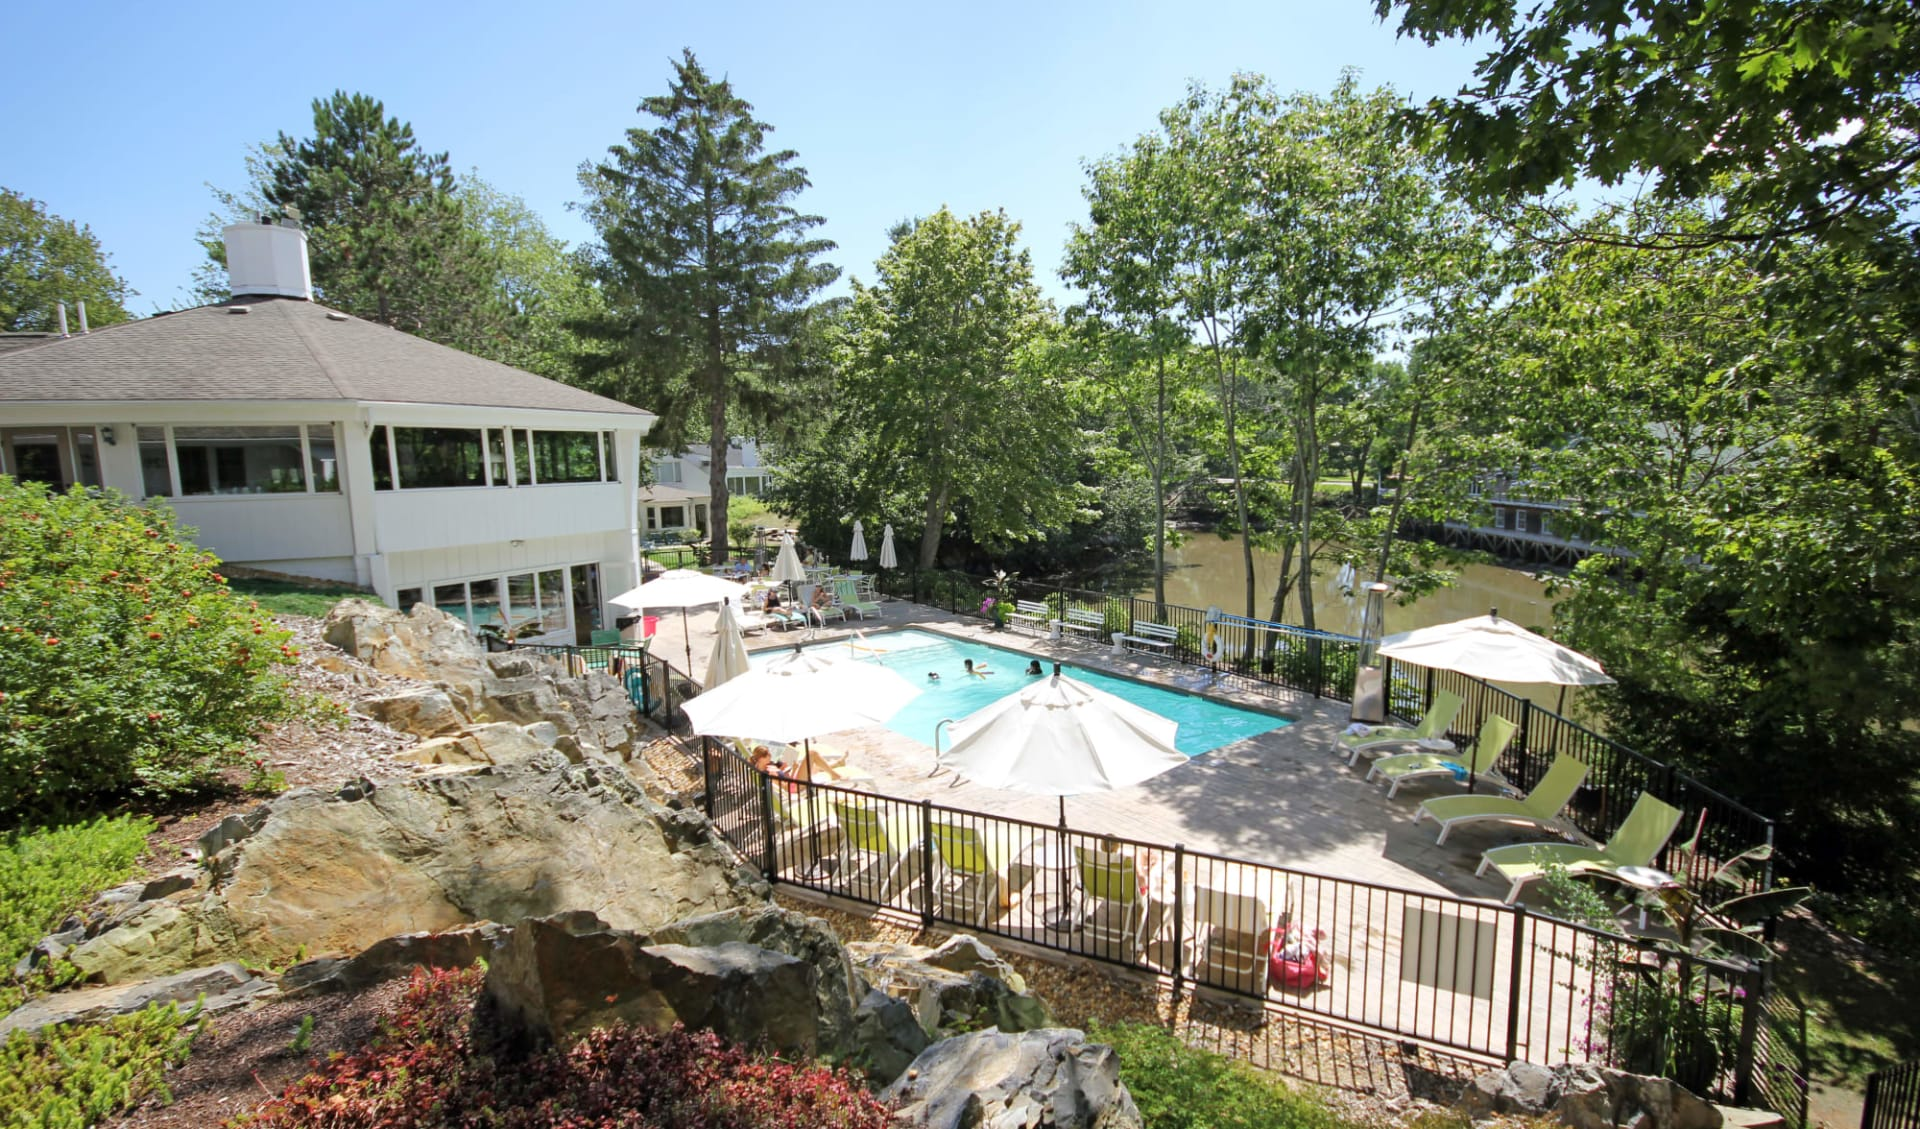 The Lodge on the Cove in Kennebunkport: Facilities_Lodge on the Cove_Pool_Tourmappers